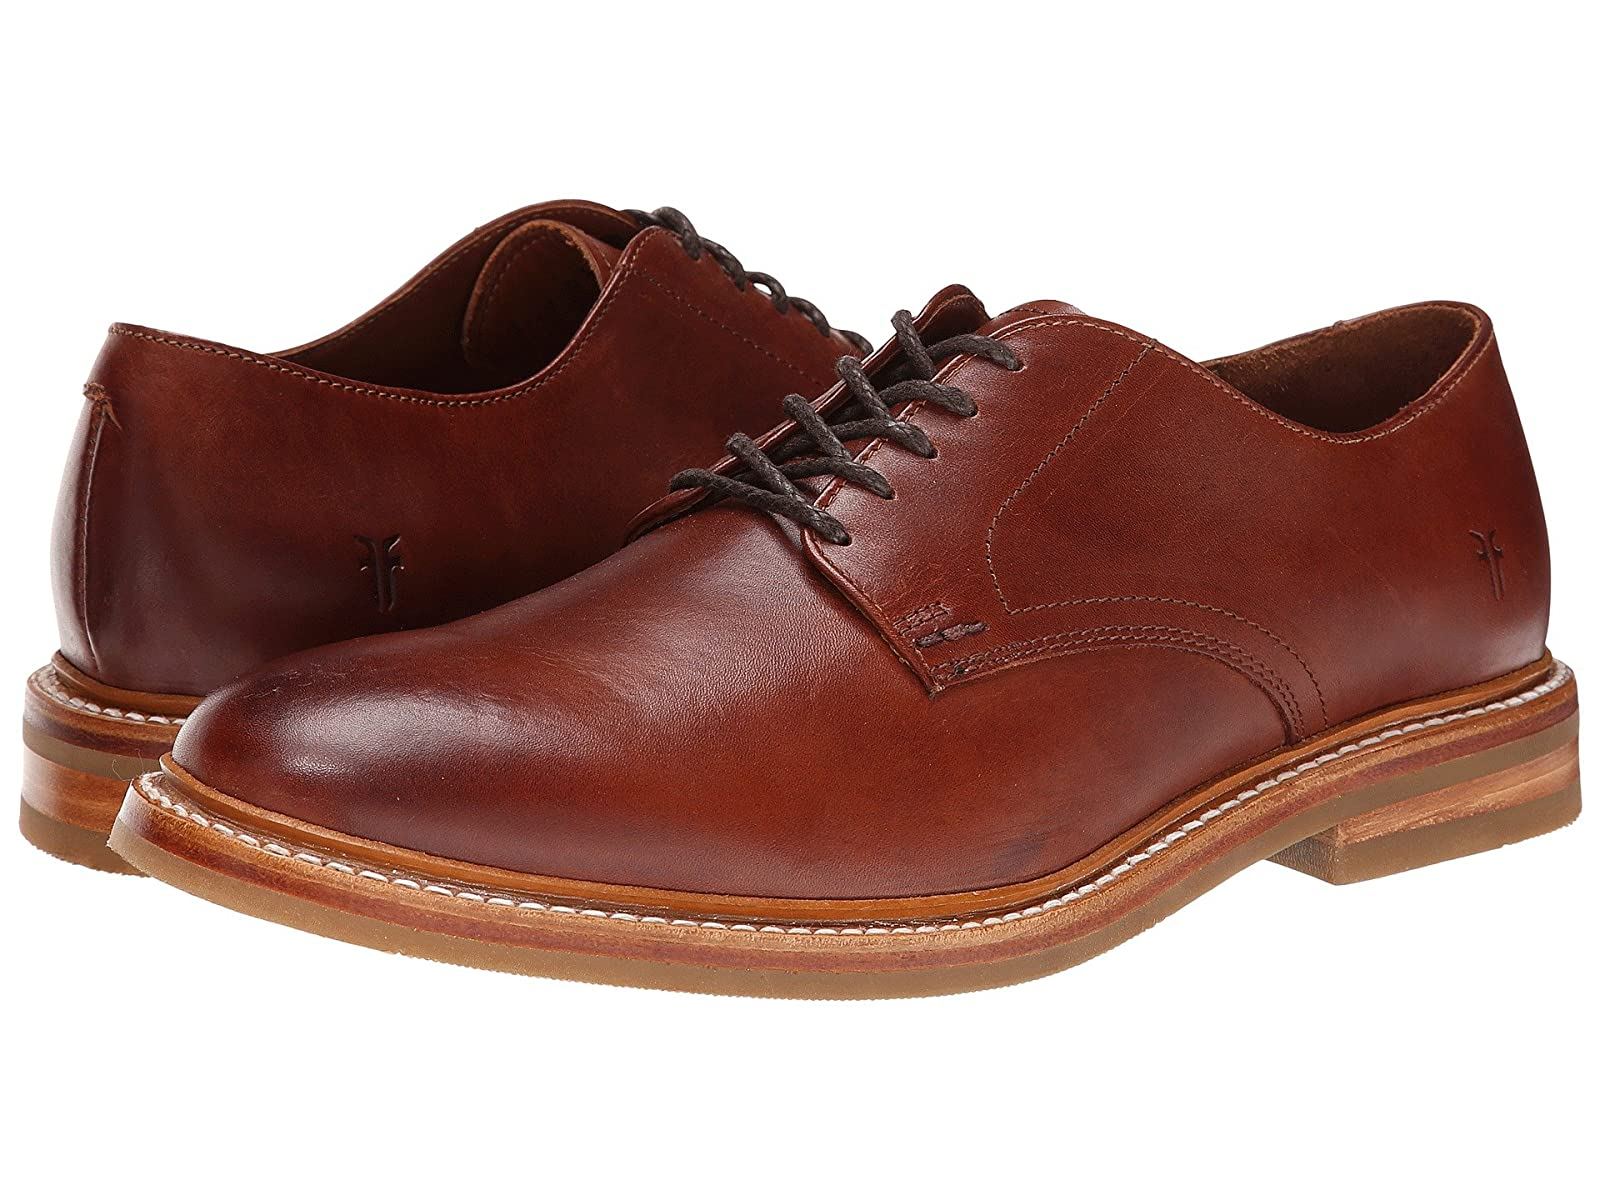 Frye William OxfordCheap and distinctive eye-catching shoes